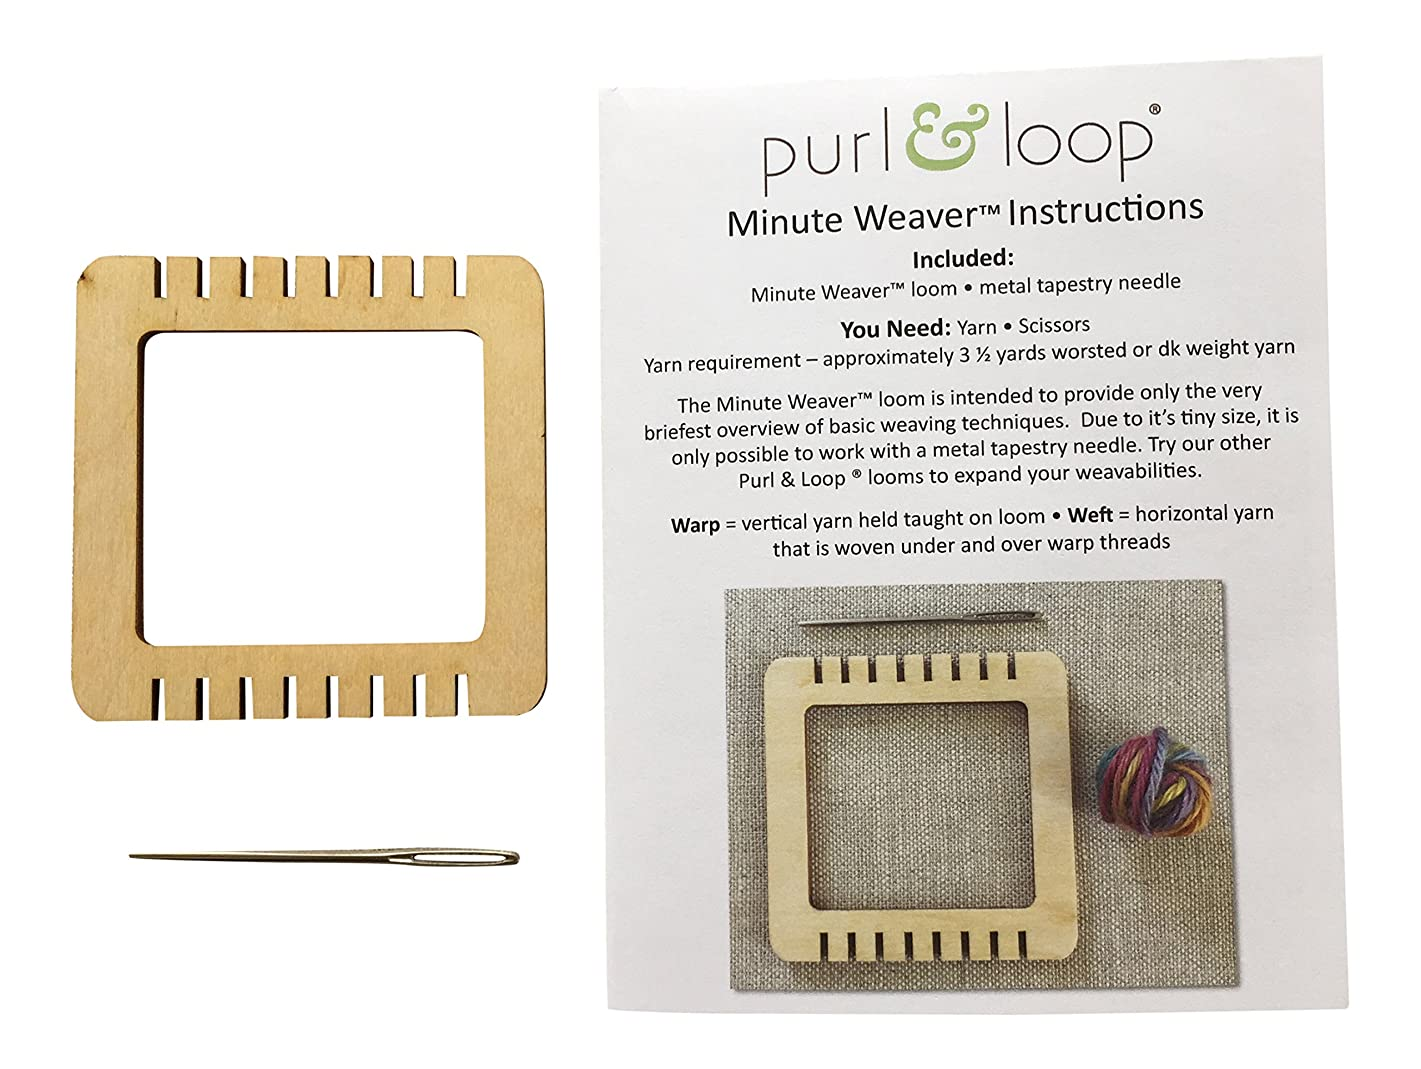 Purl & Loop Minute Weaver Micro Mini Weaving Loom (Medium / 8 EPI)